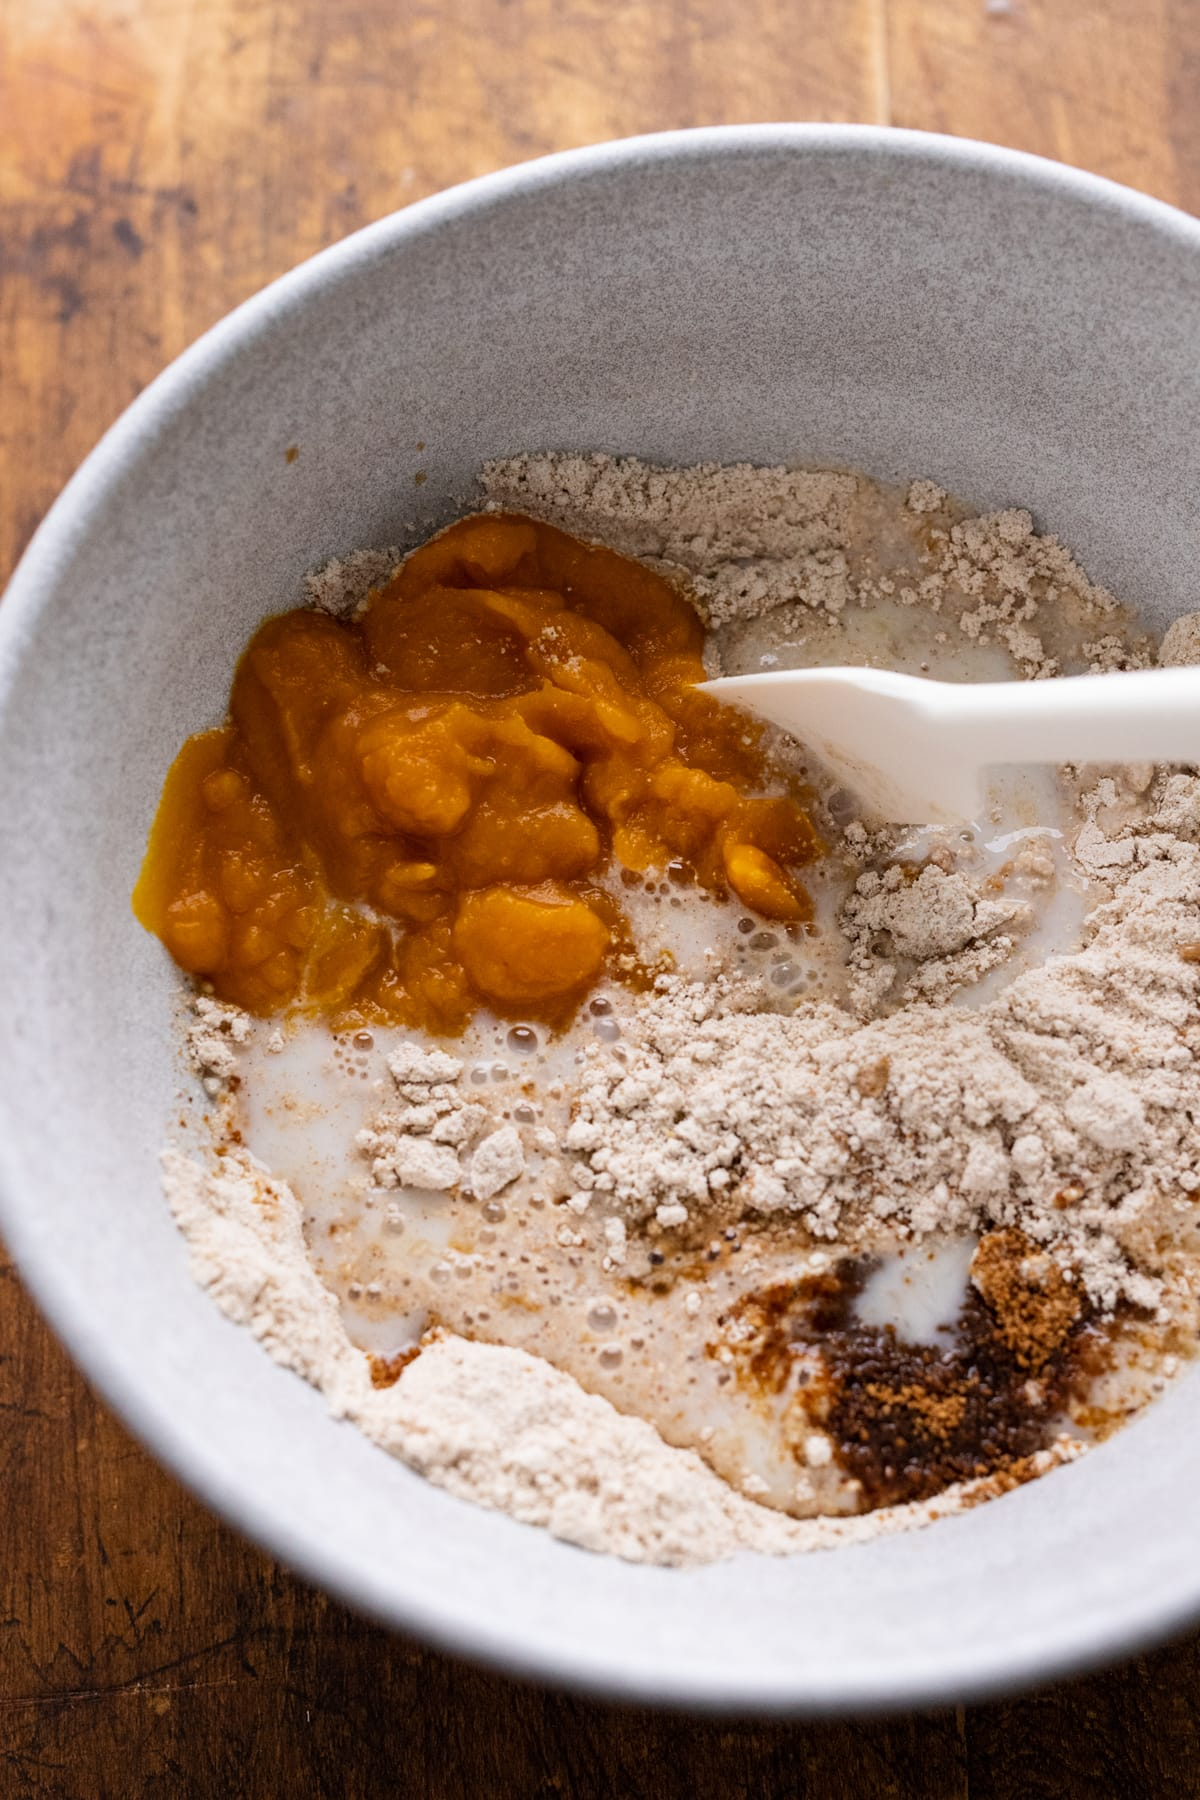 Ingredients for pumpkin pancakes being stirred in a white bowl with a rubber spatula.